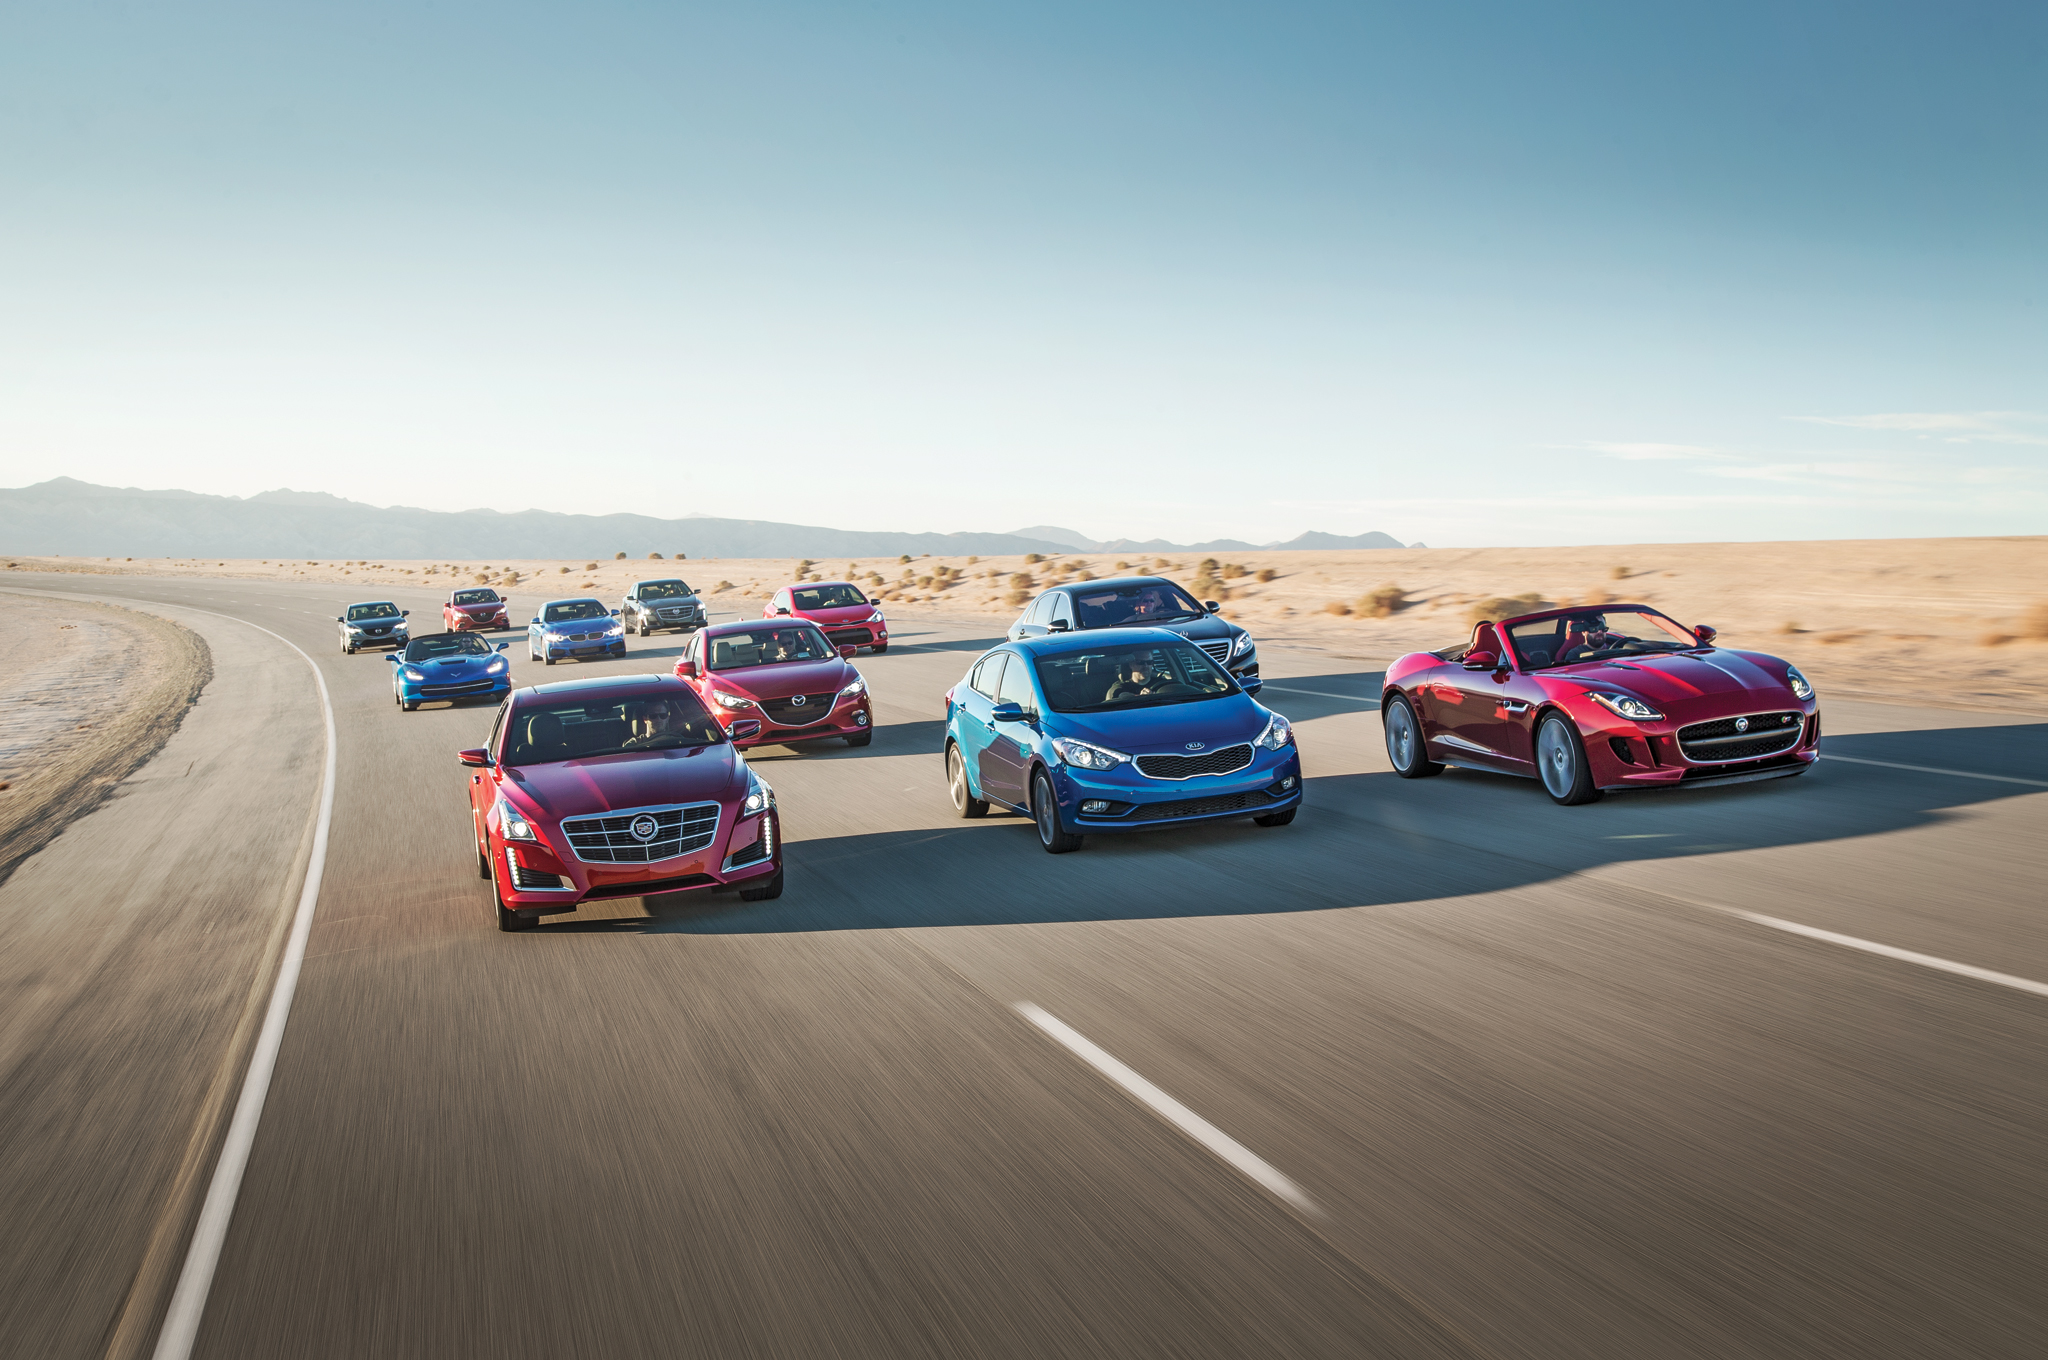 2014 Motor Trend Car of the Year: Contenders and Finalists - Motor Trend